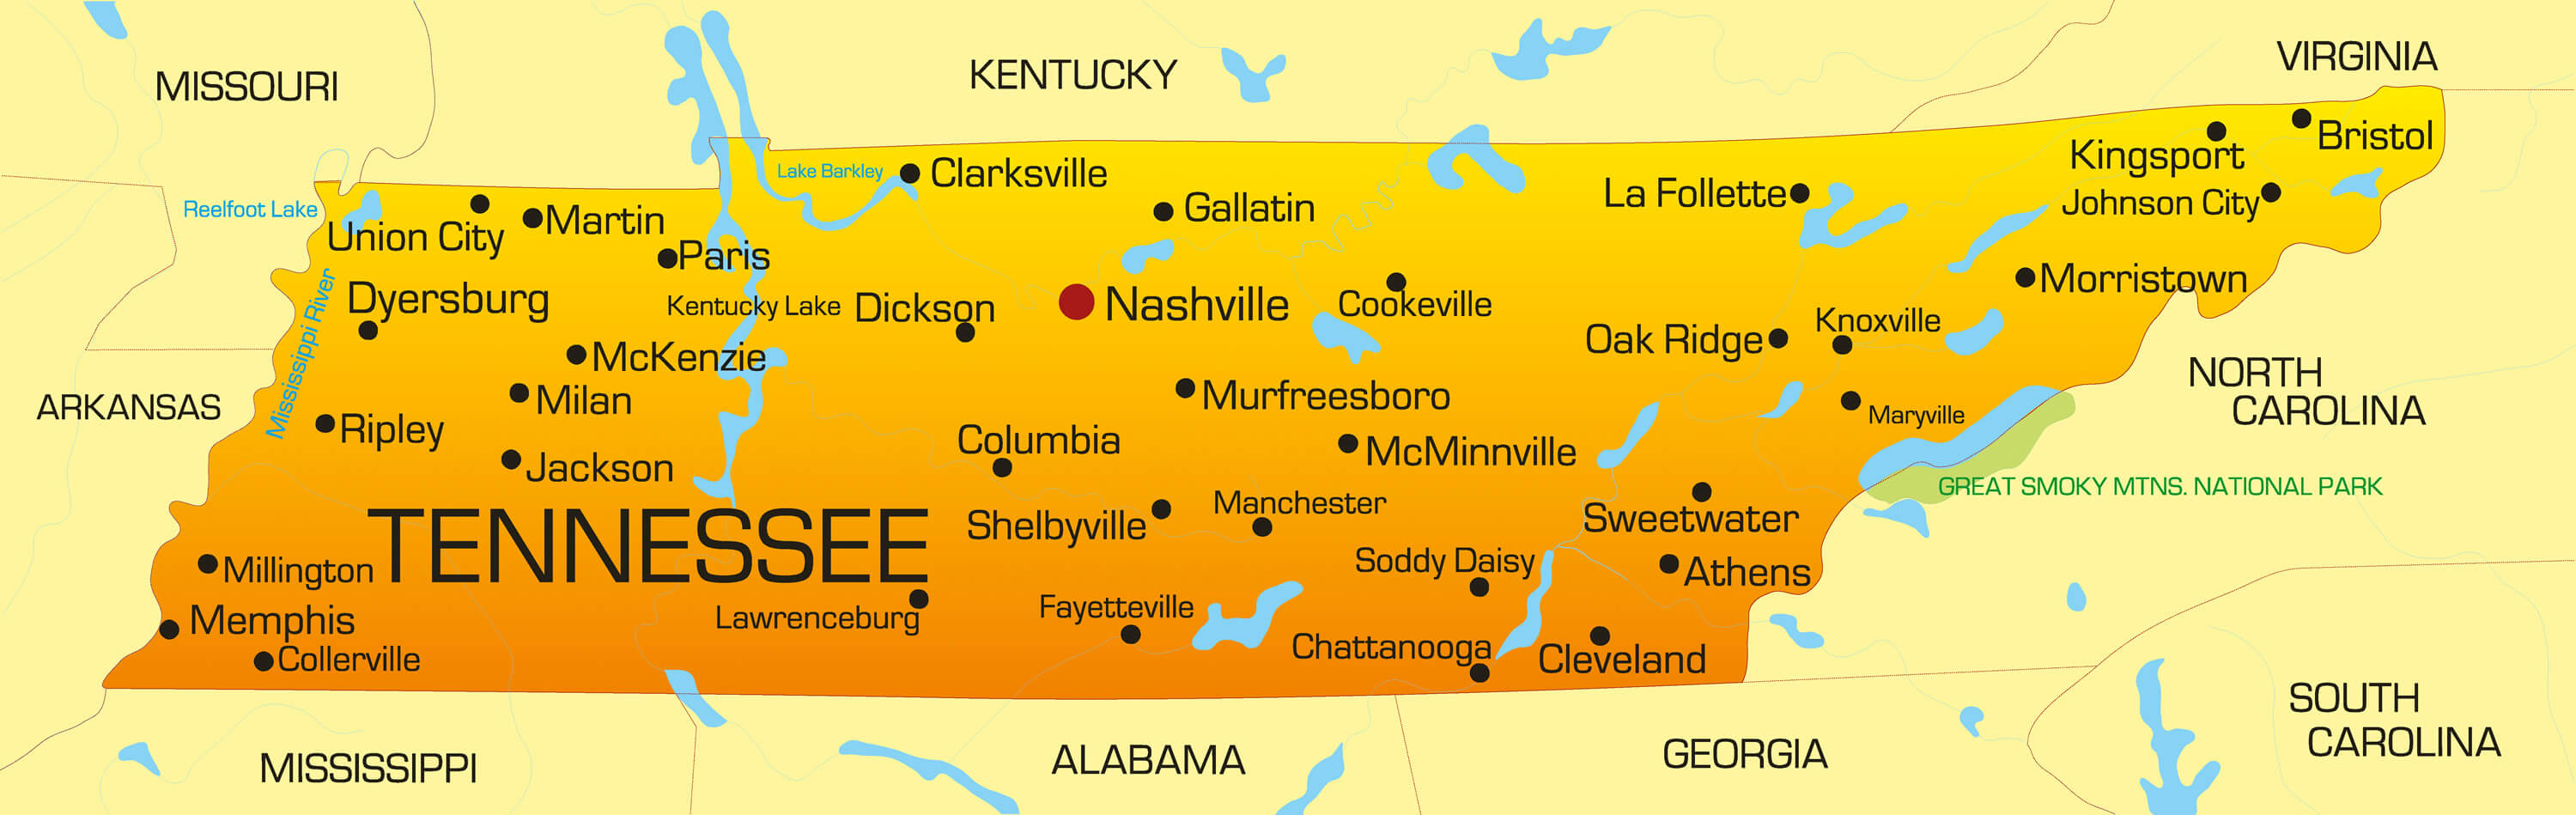 Tennessee Map Guide Of The World - Map of tennesee